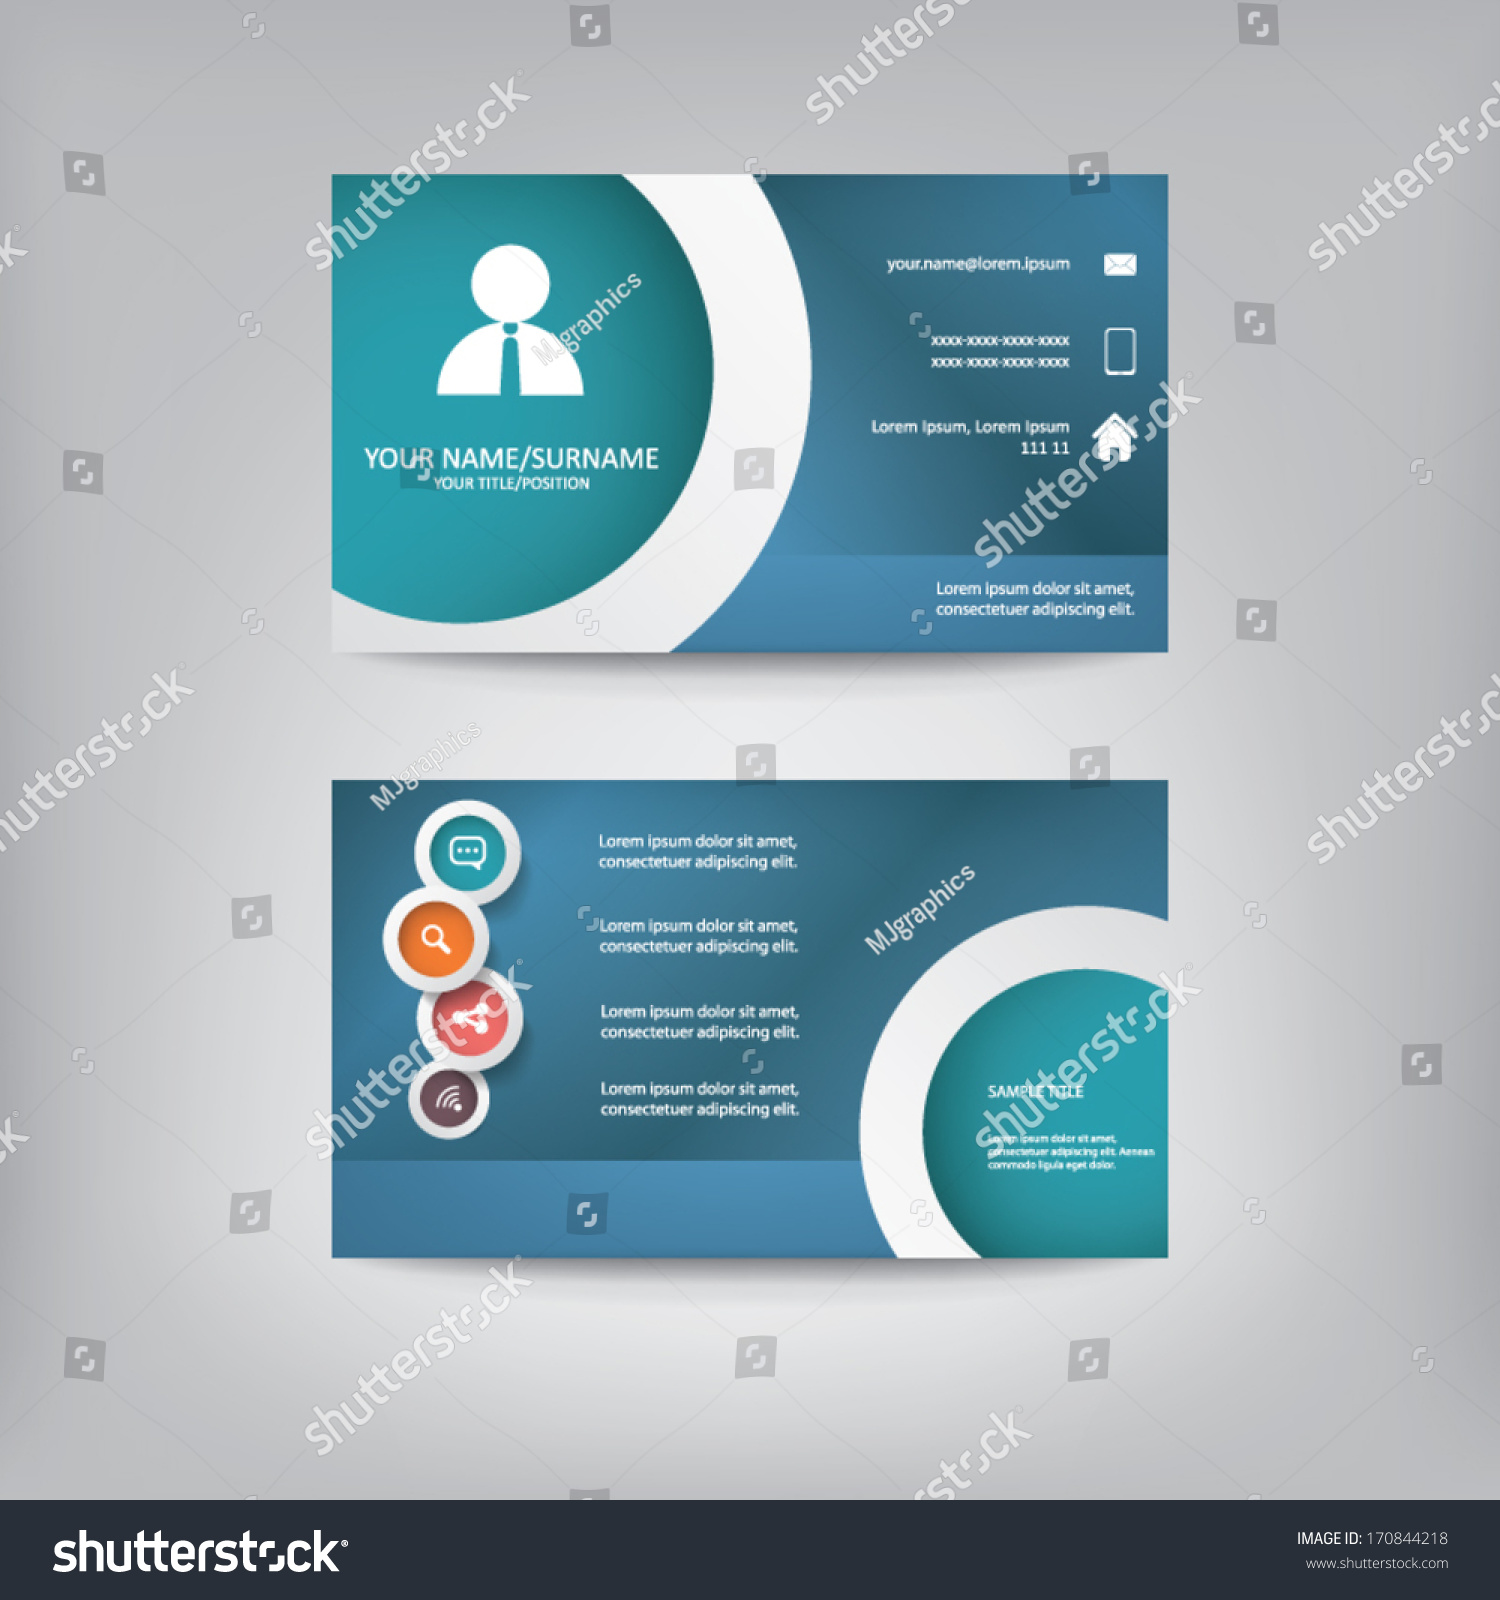 modern simple business card template elegant stock vector